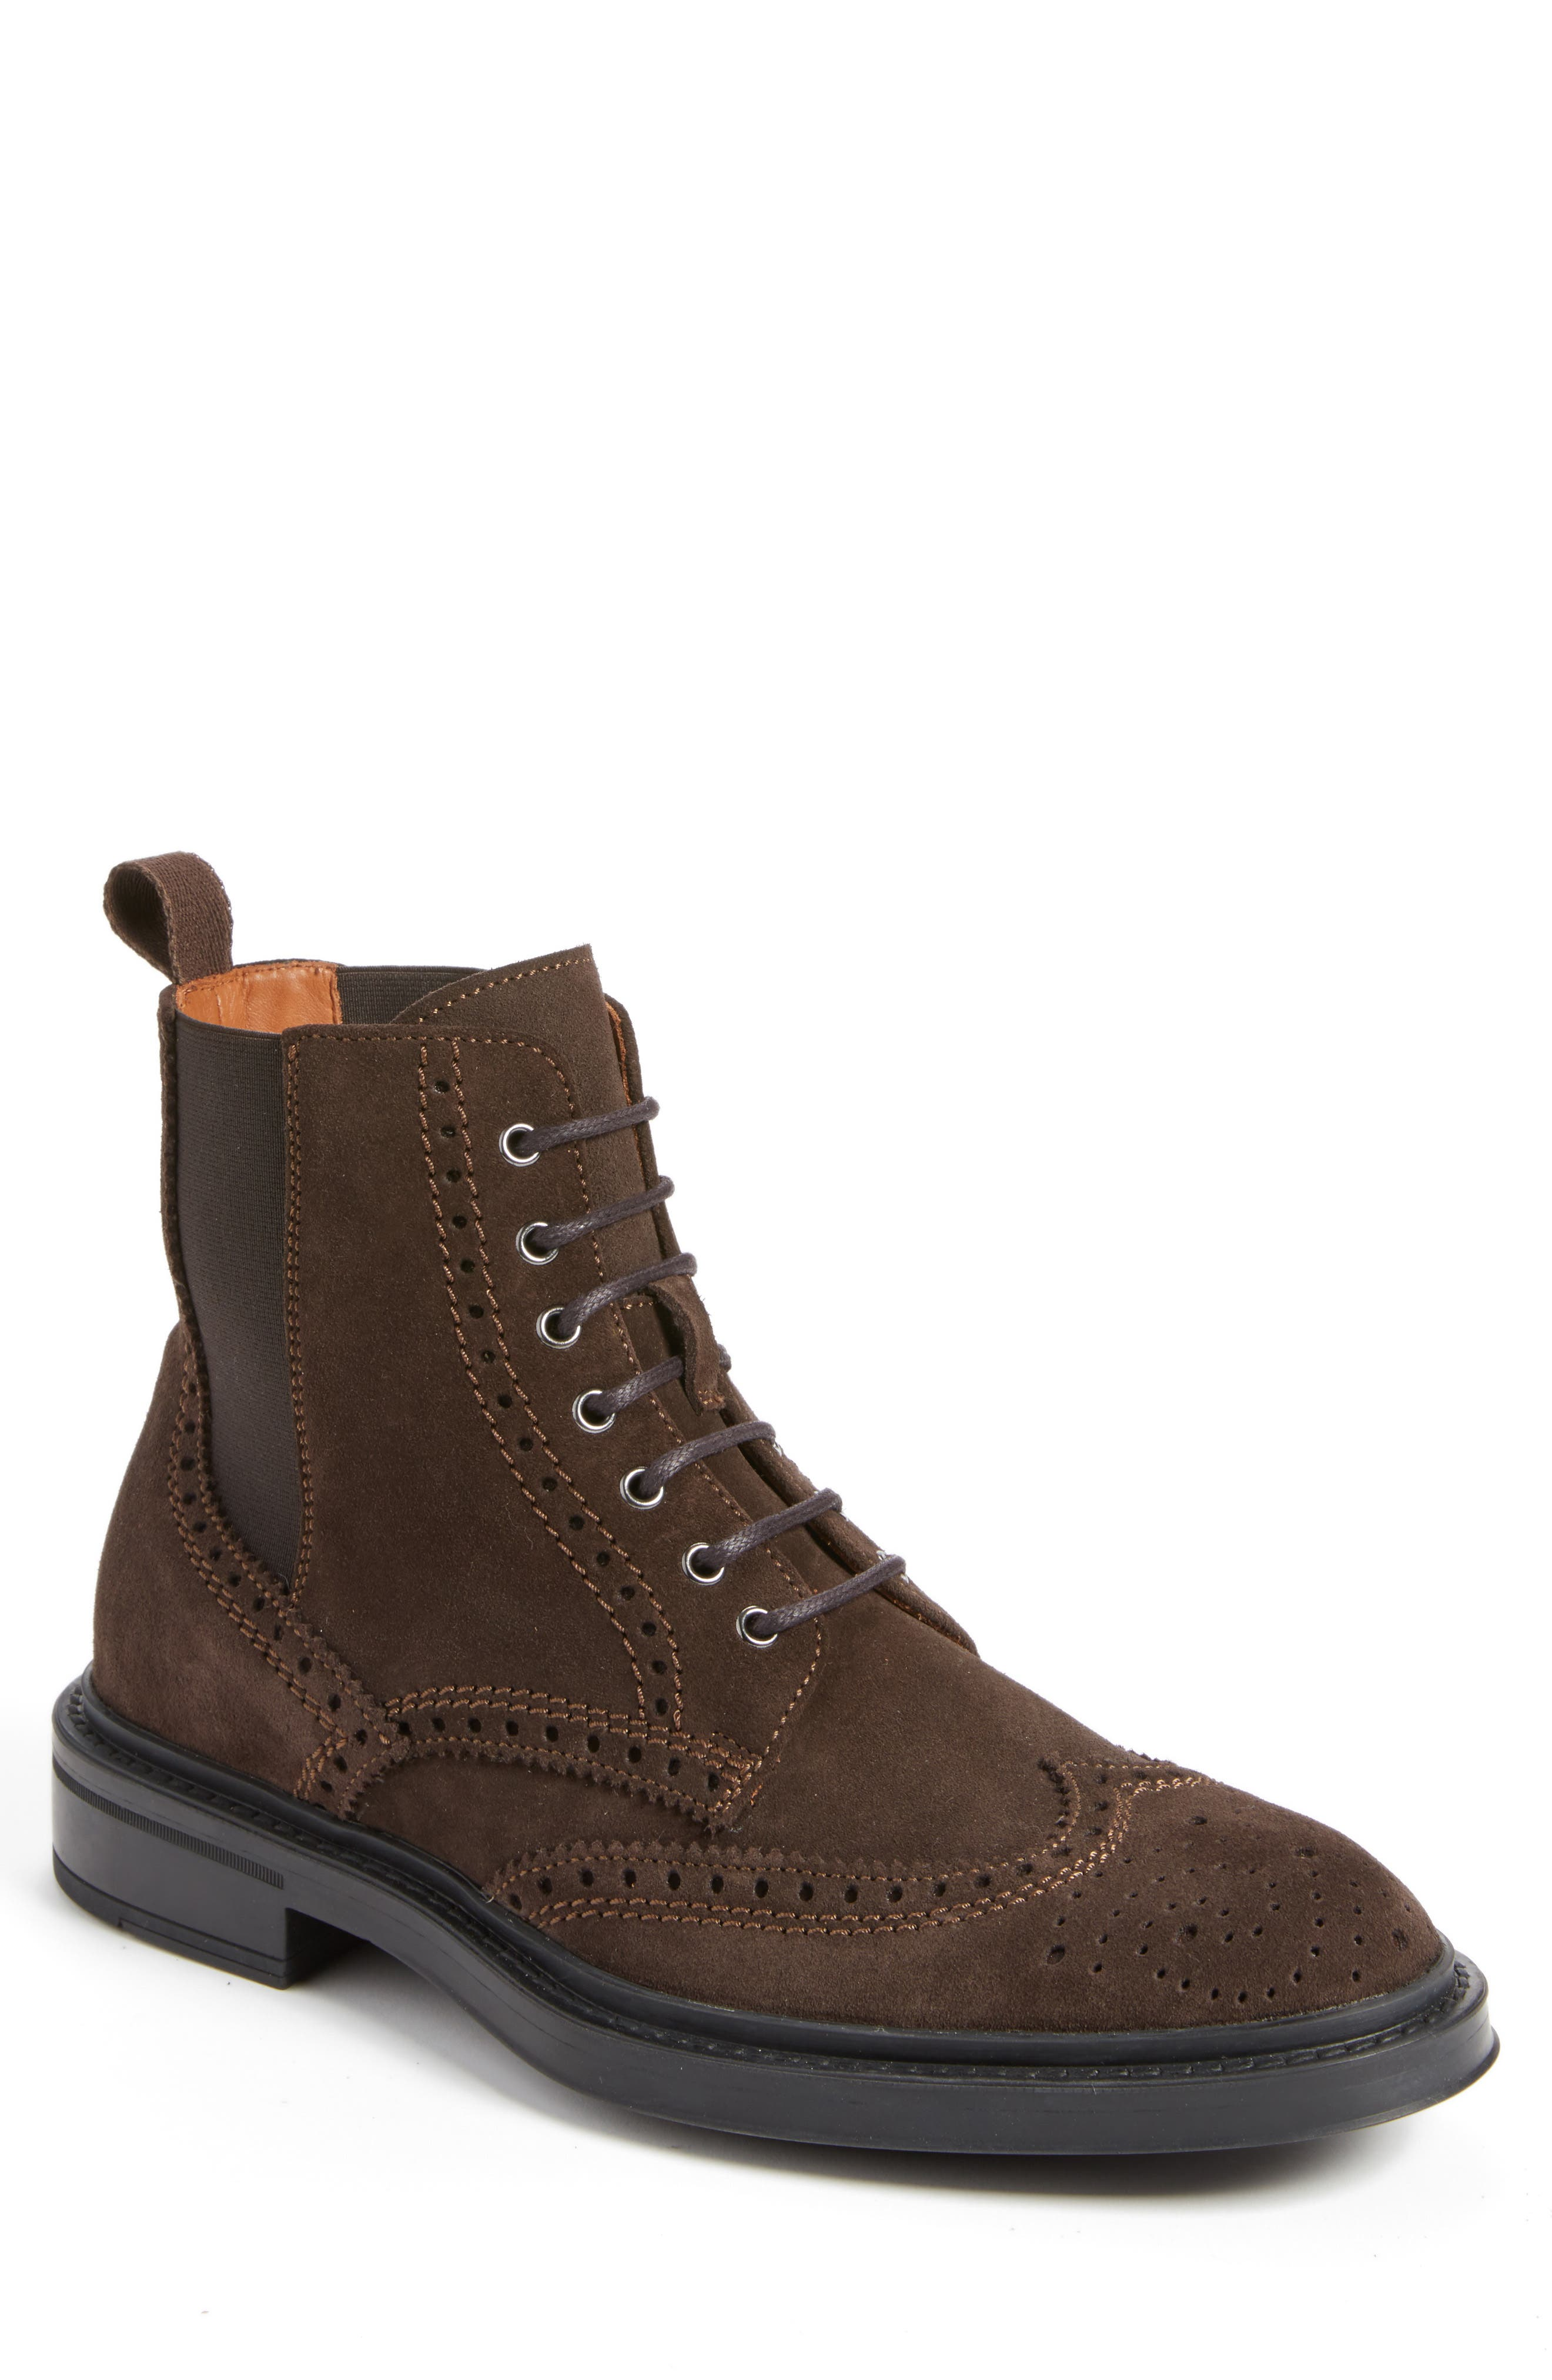 Lawrence Wingtip Boot,                         Main,                         color, 201